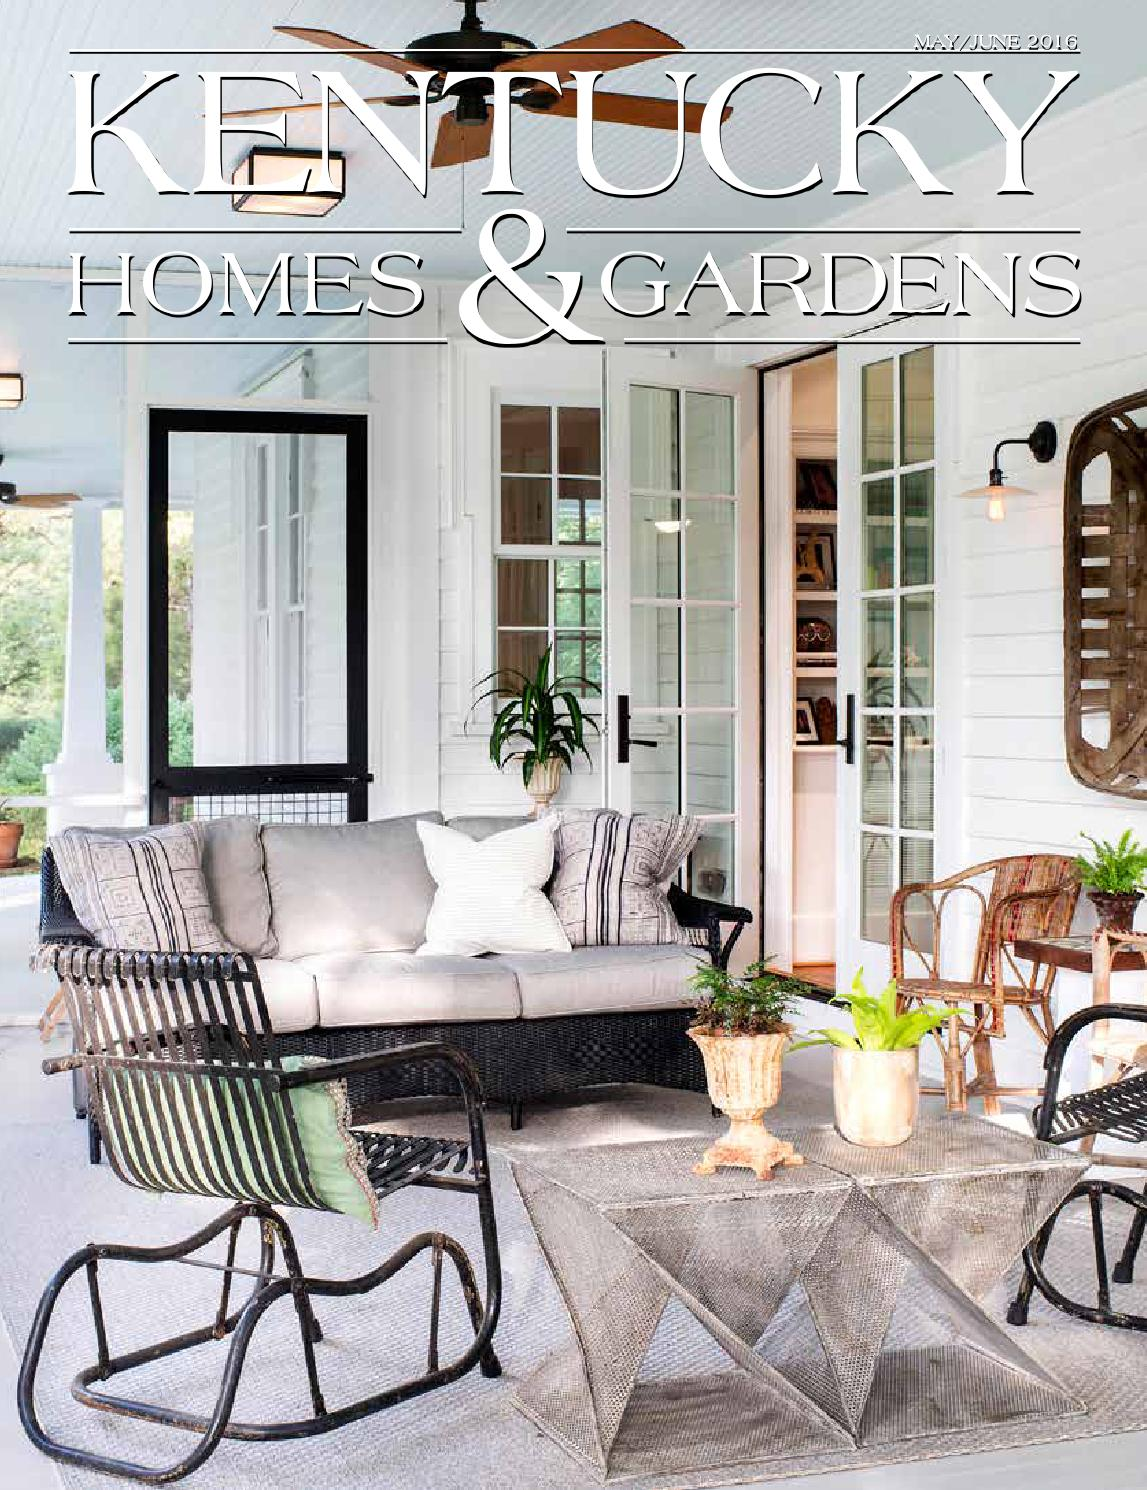 Kentucky Homes & Gardens Magazine by Kentucky Homes & Gardens - issuu